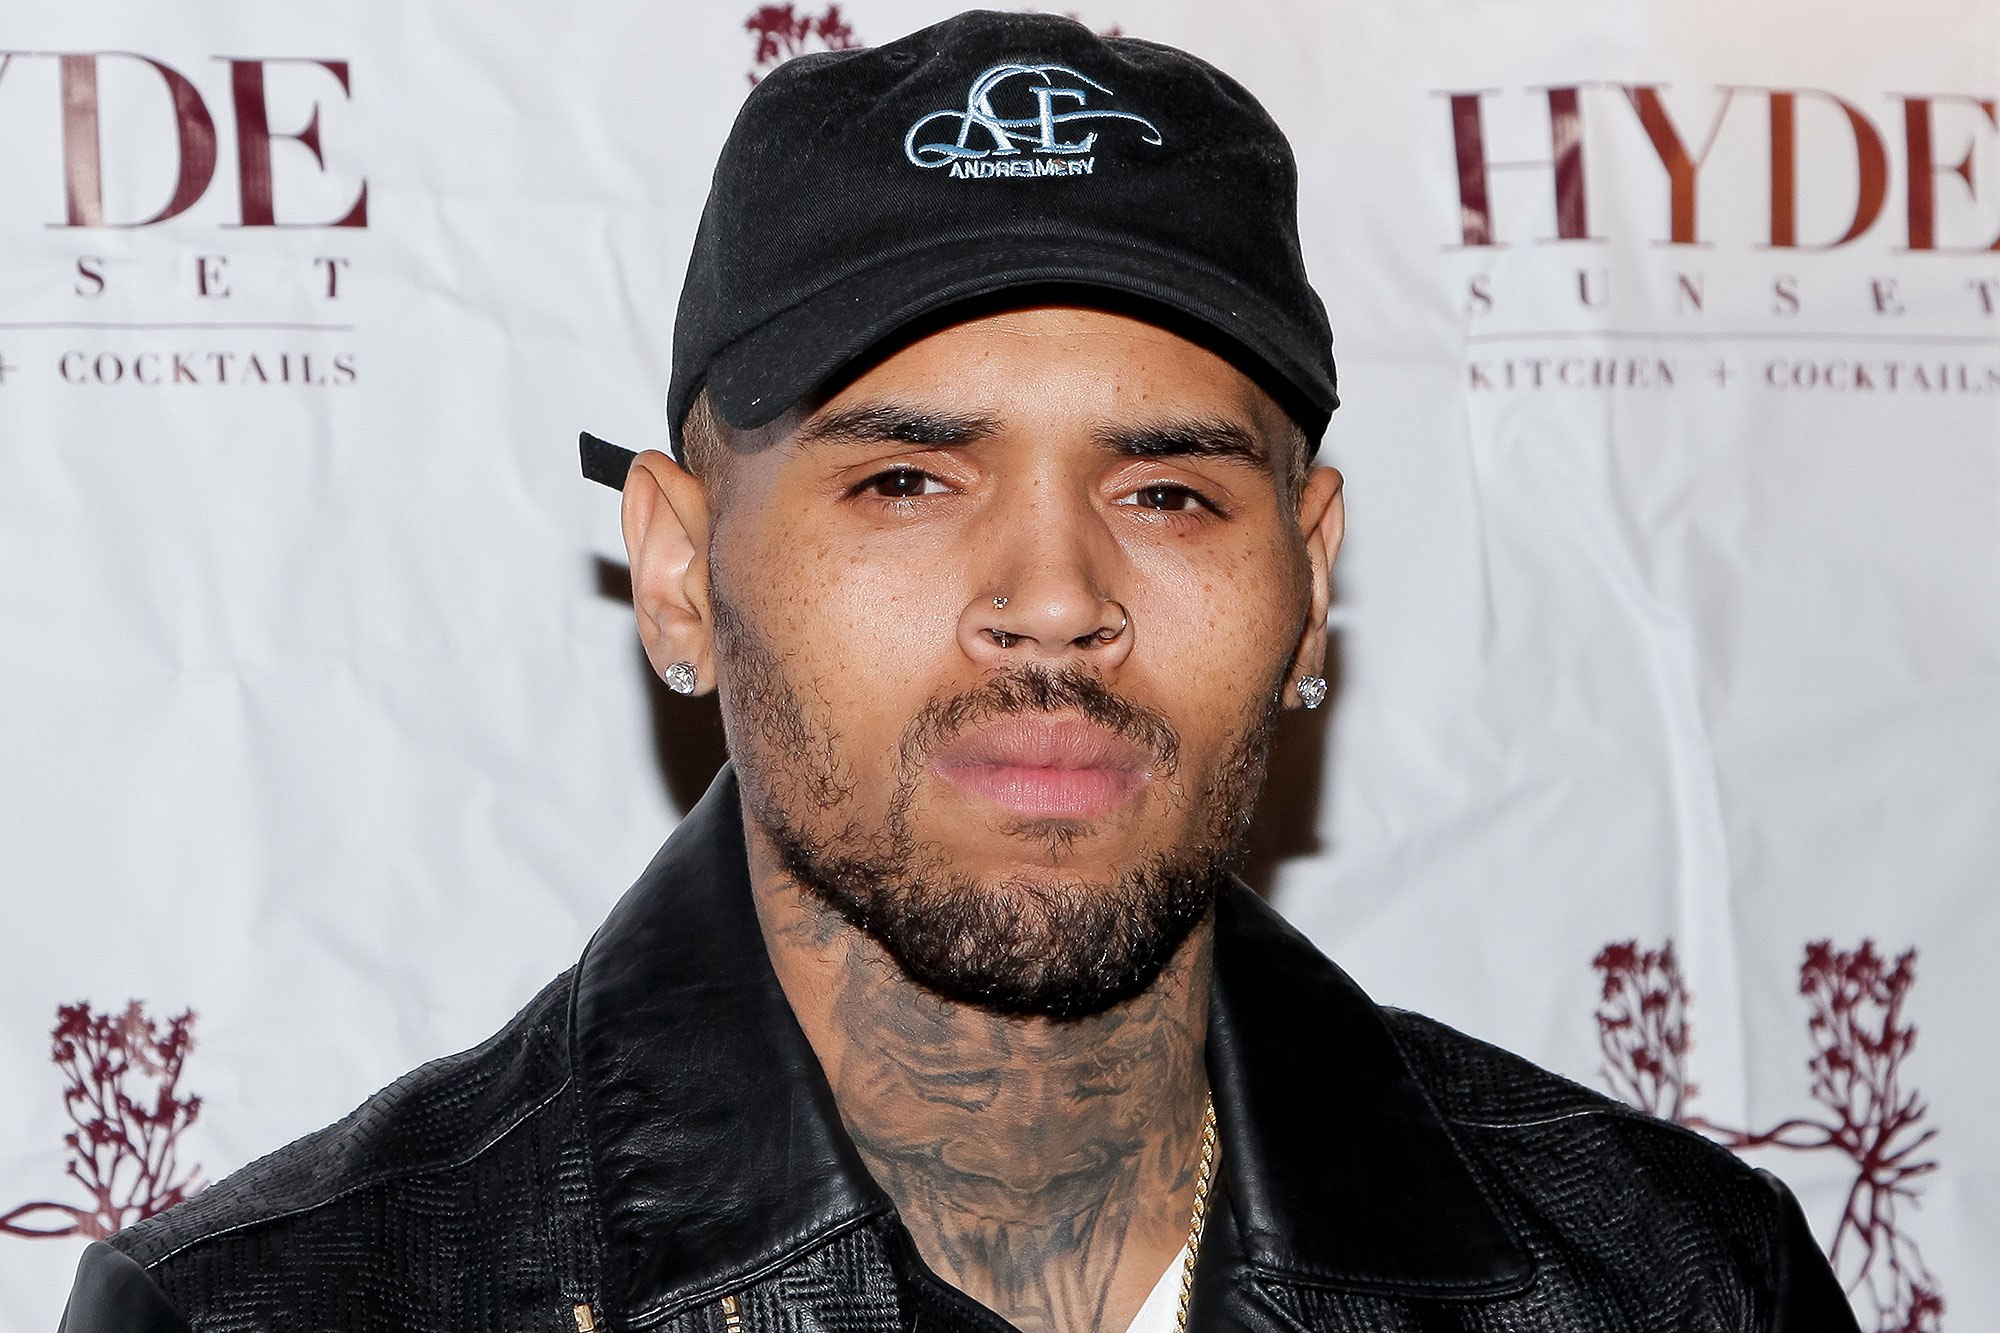 Chris Brown's album 'Indigo' earns No. 1 on Billboard 200 chart